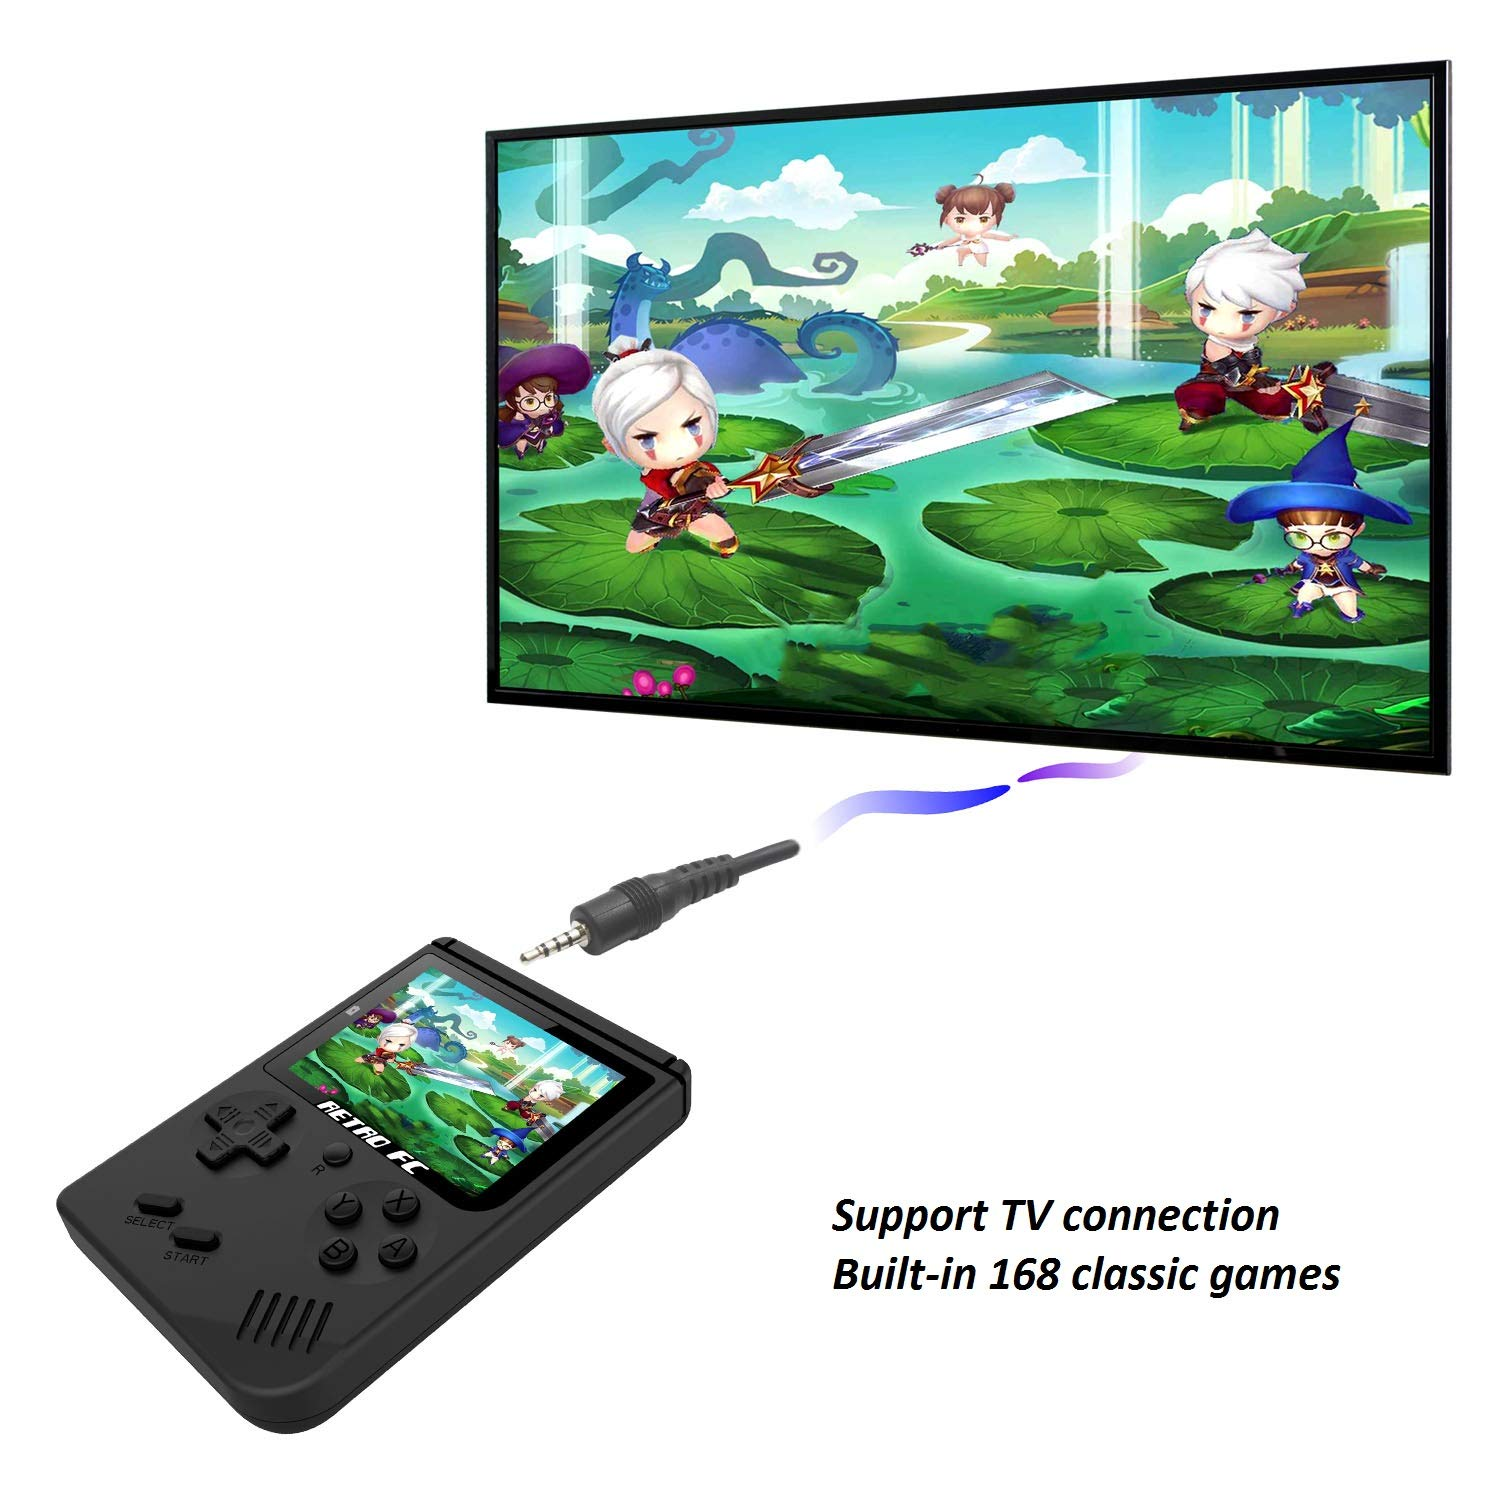 Handheld Game Console , Retro FC Game Console 3 Inch Screen 168 Classic Games TV Output Game Player , Birthday Present for Children - Black by MJKJ (Image #3)